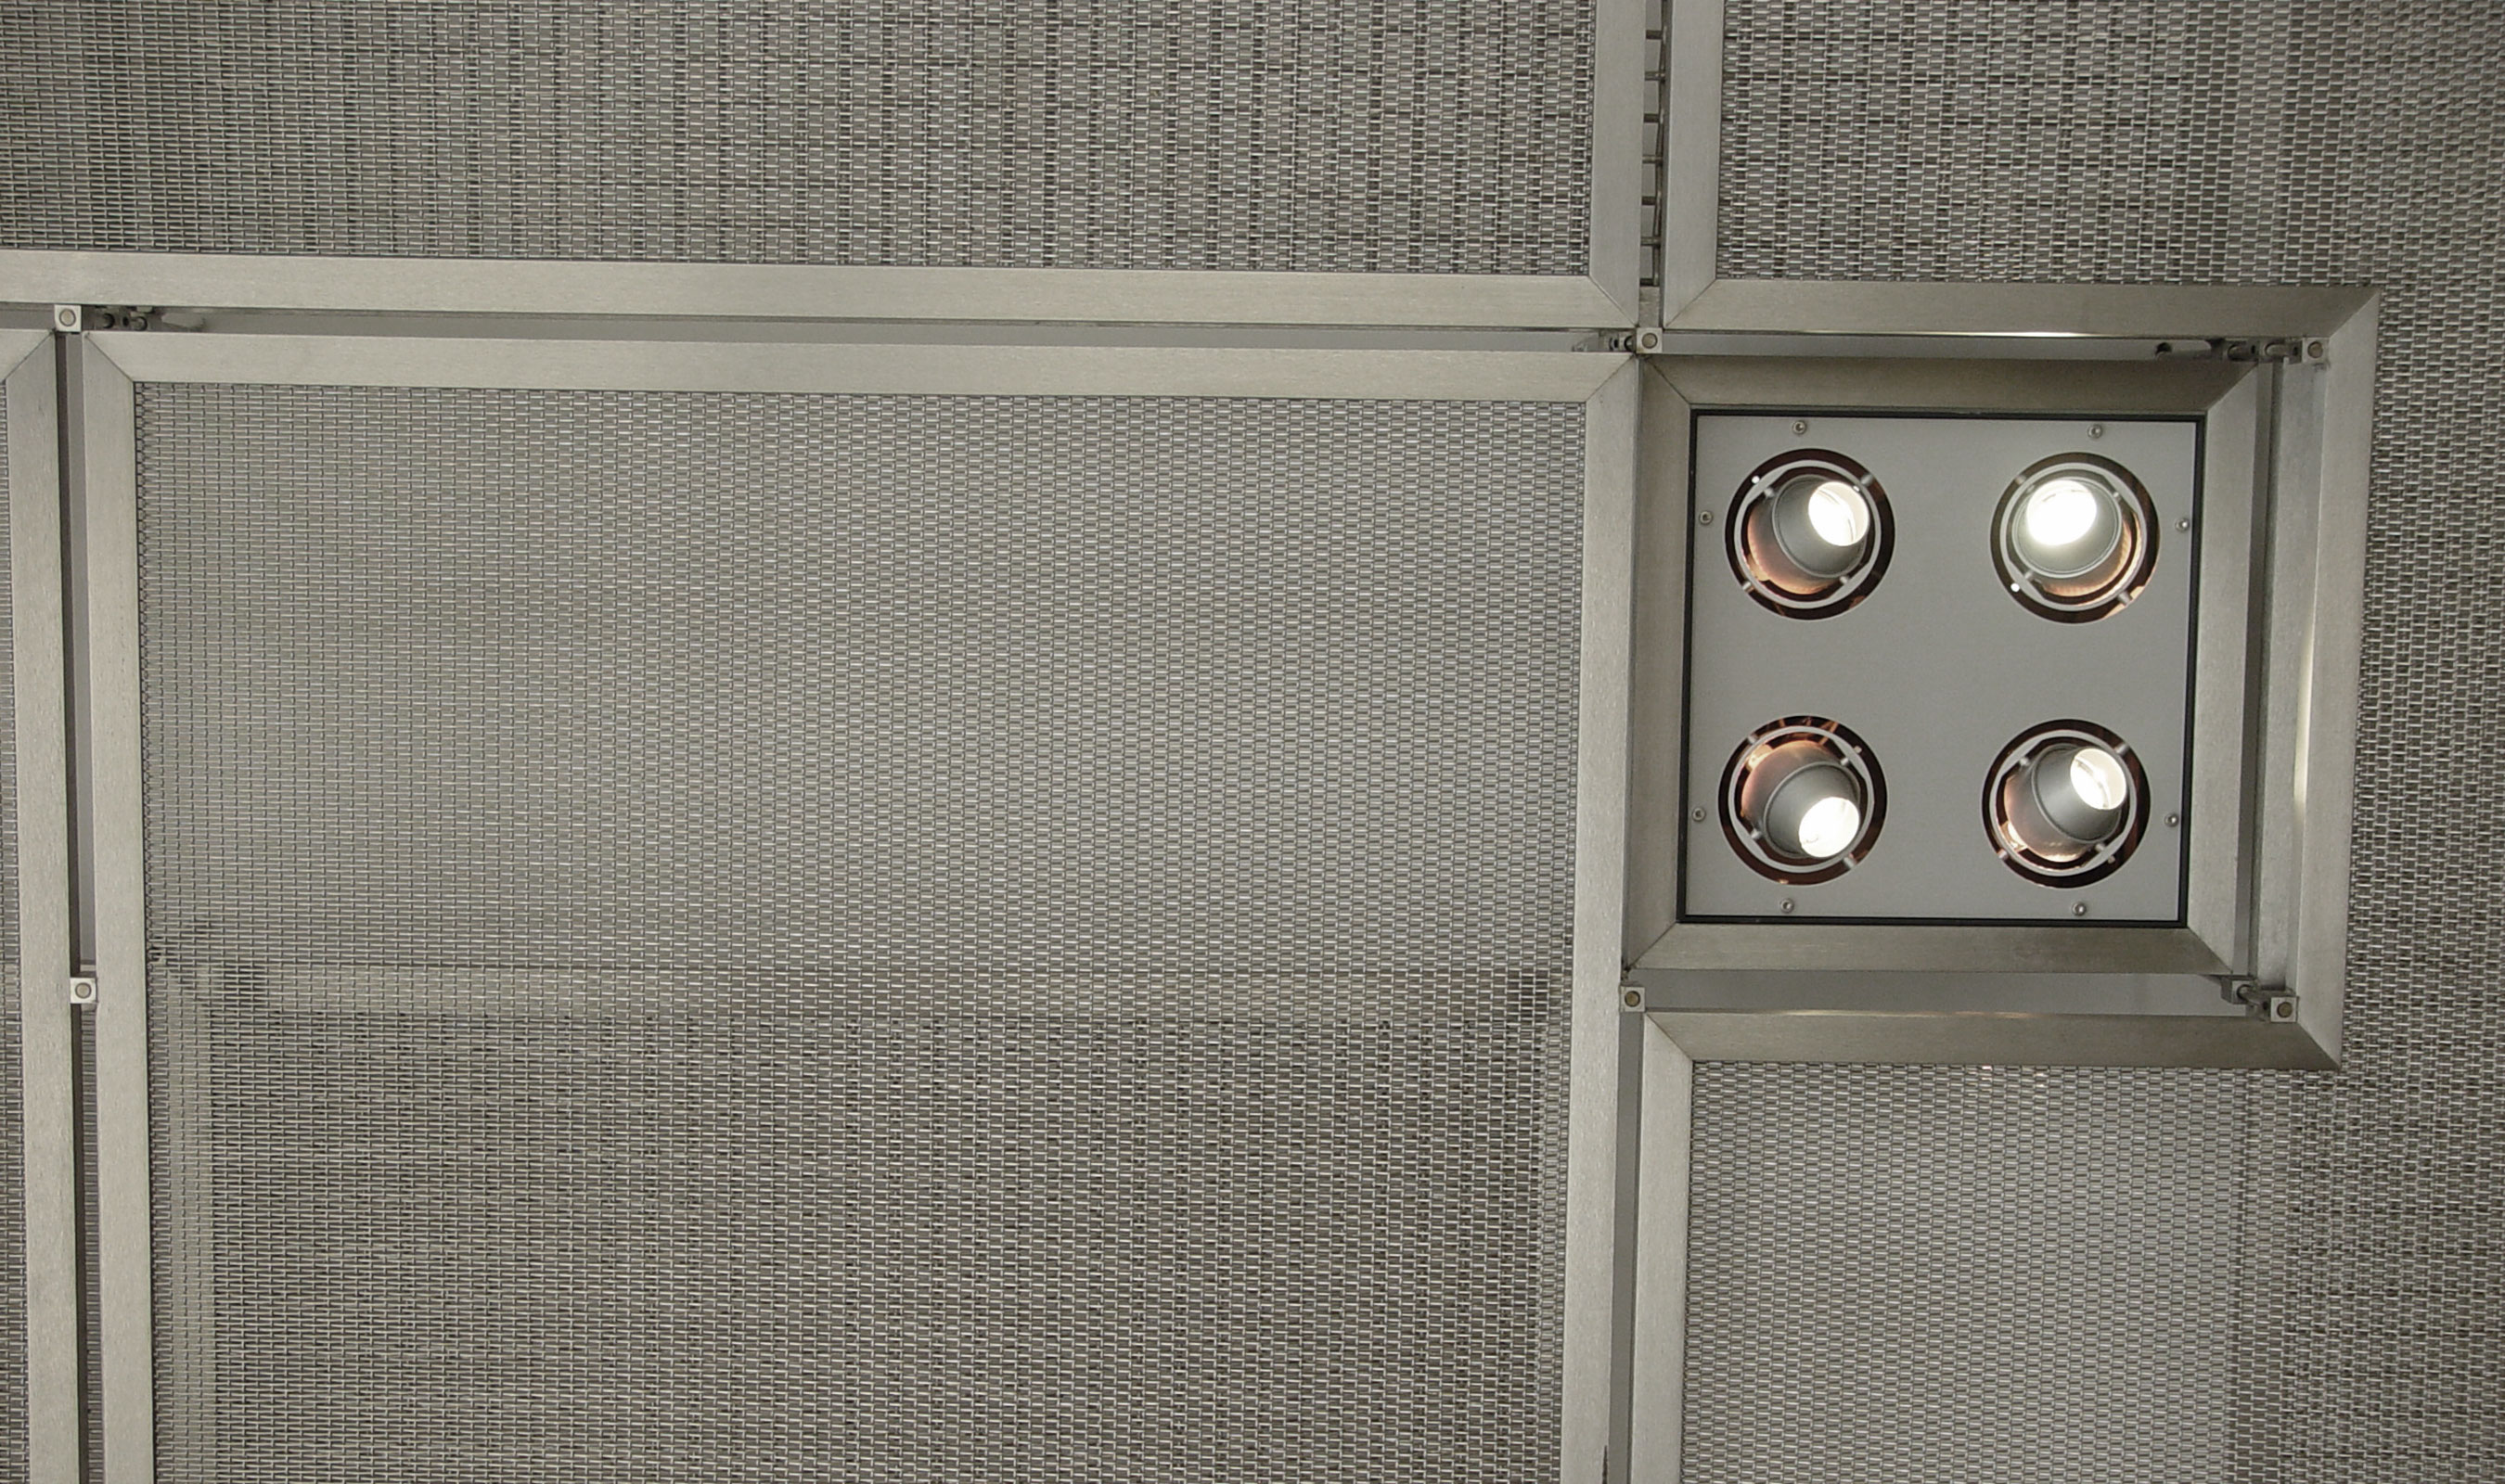 PZ-7 Stainless Steel Wire Mesh Pattern Ceiling application